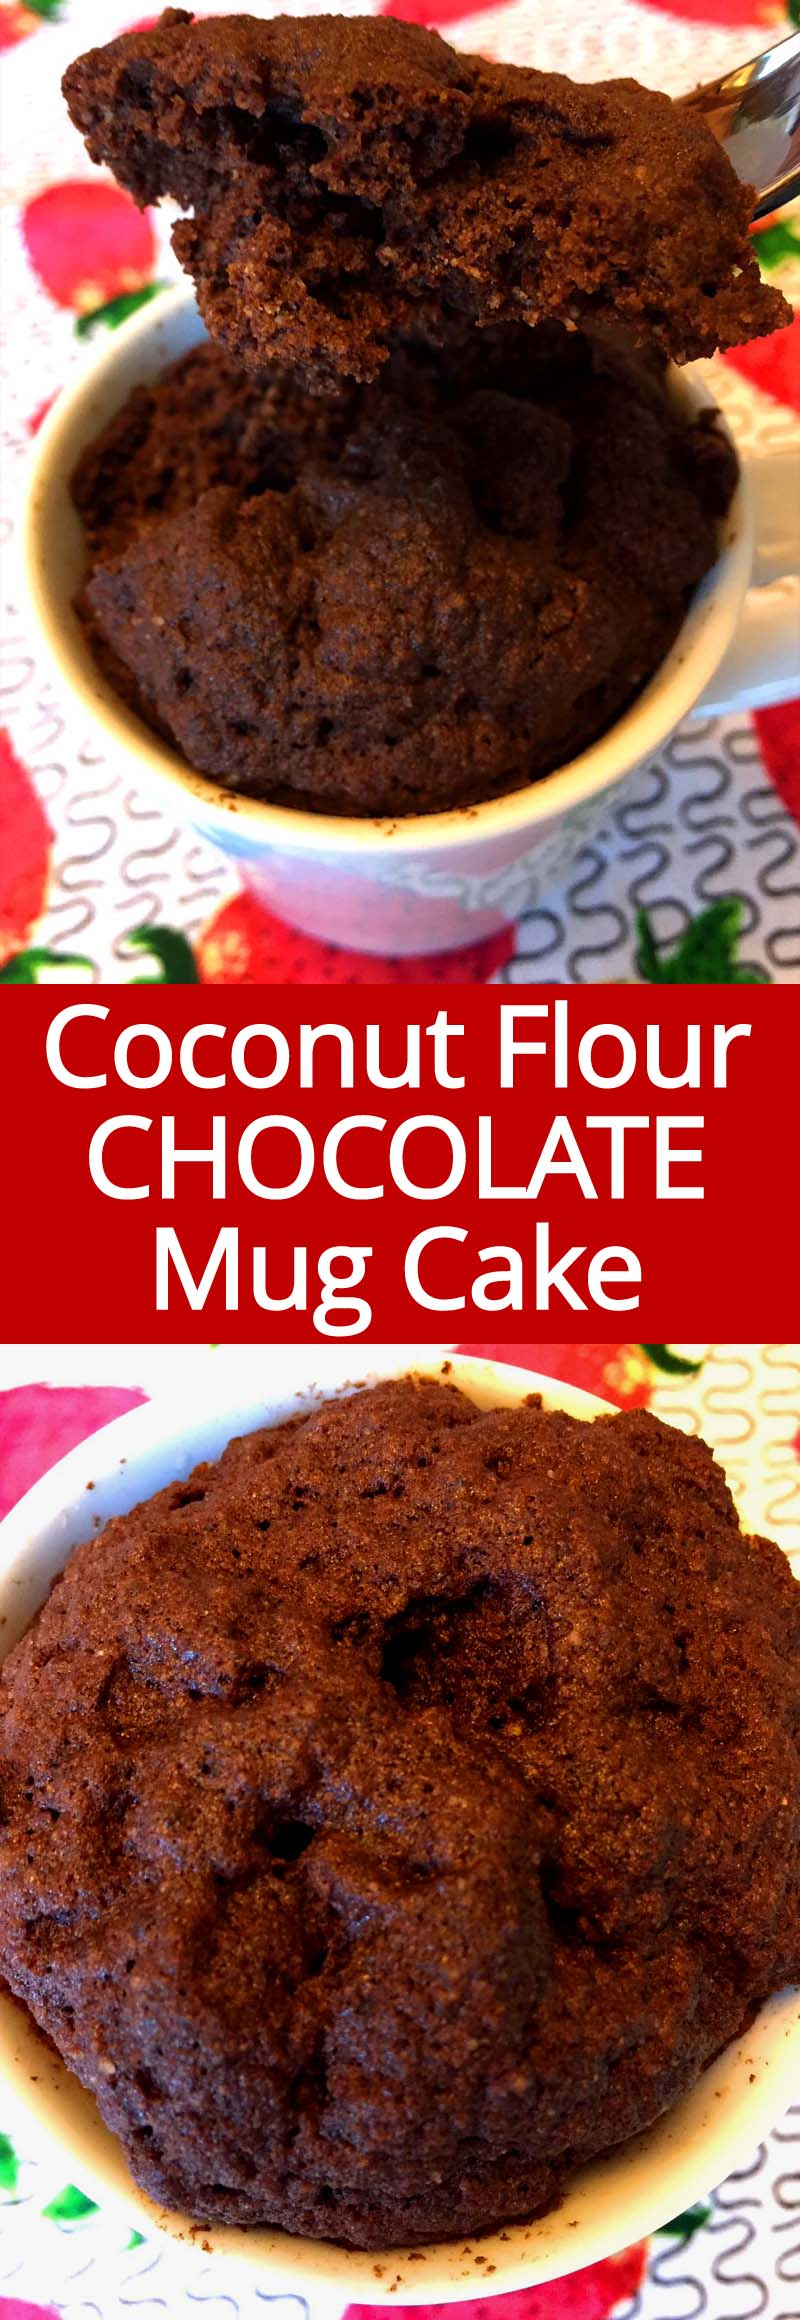 This gluten-free paleo chocolate mug cake is made with coconut flour and it tastes amazing!  I can eat this healthy coconut flour chocolate mug cake for breakfast every day!